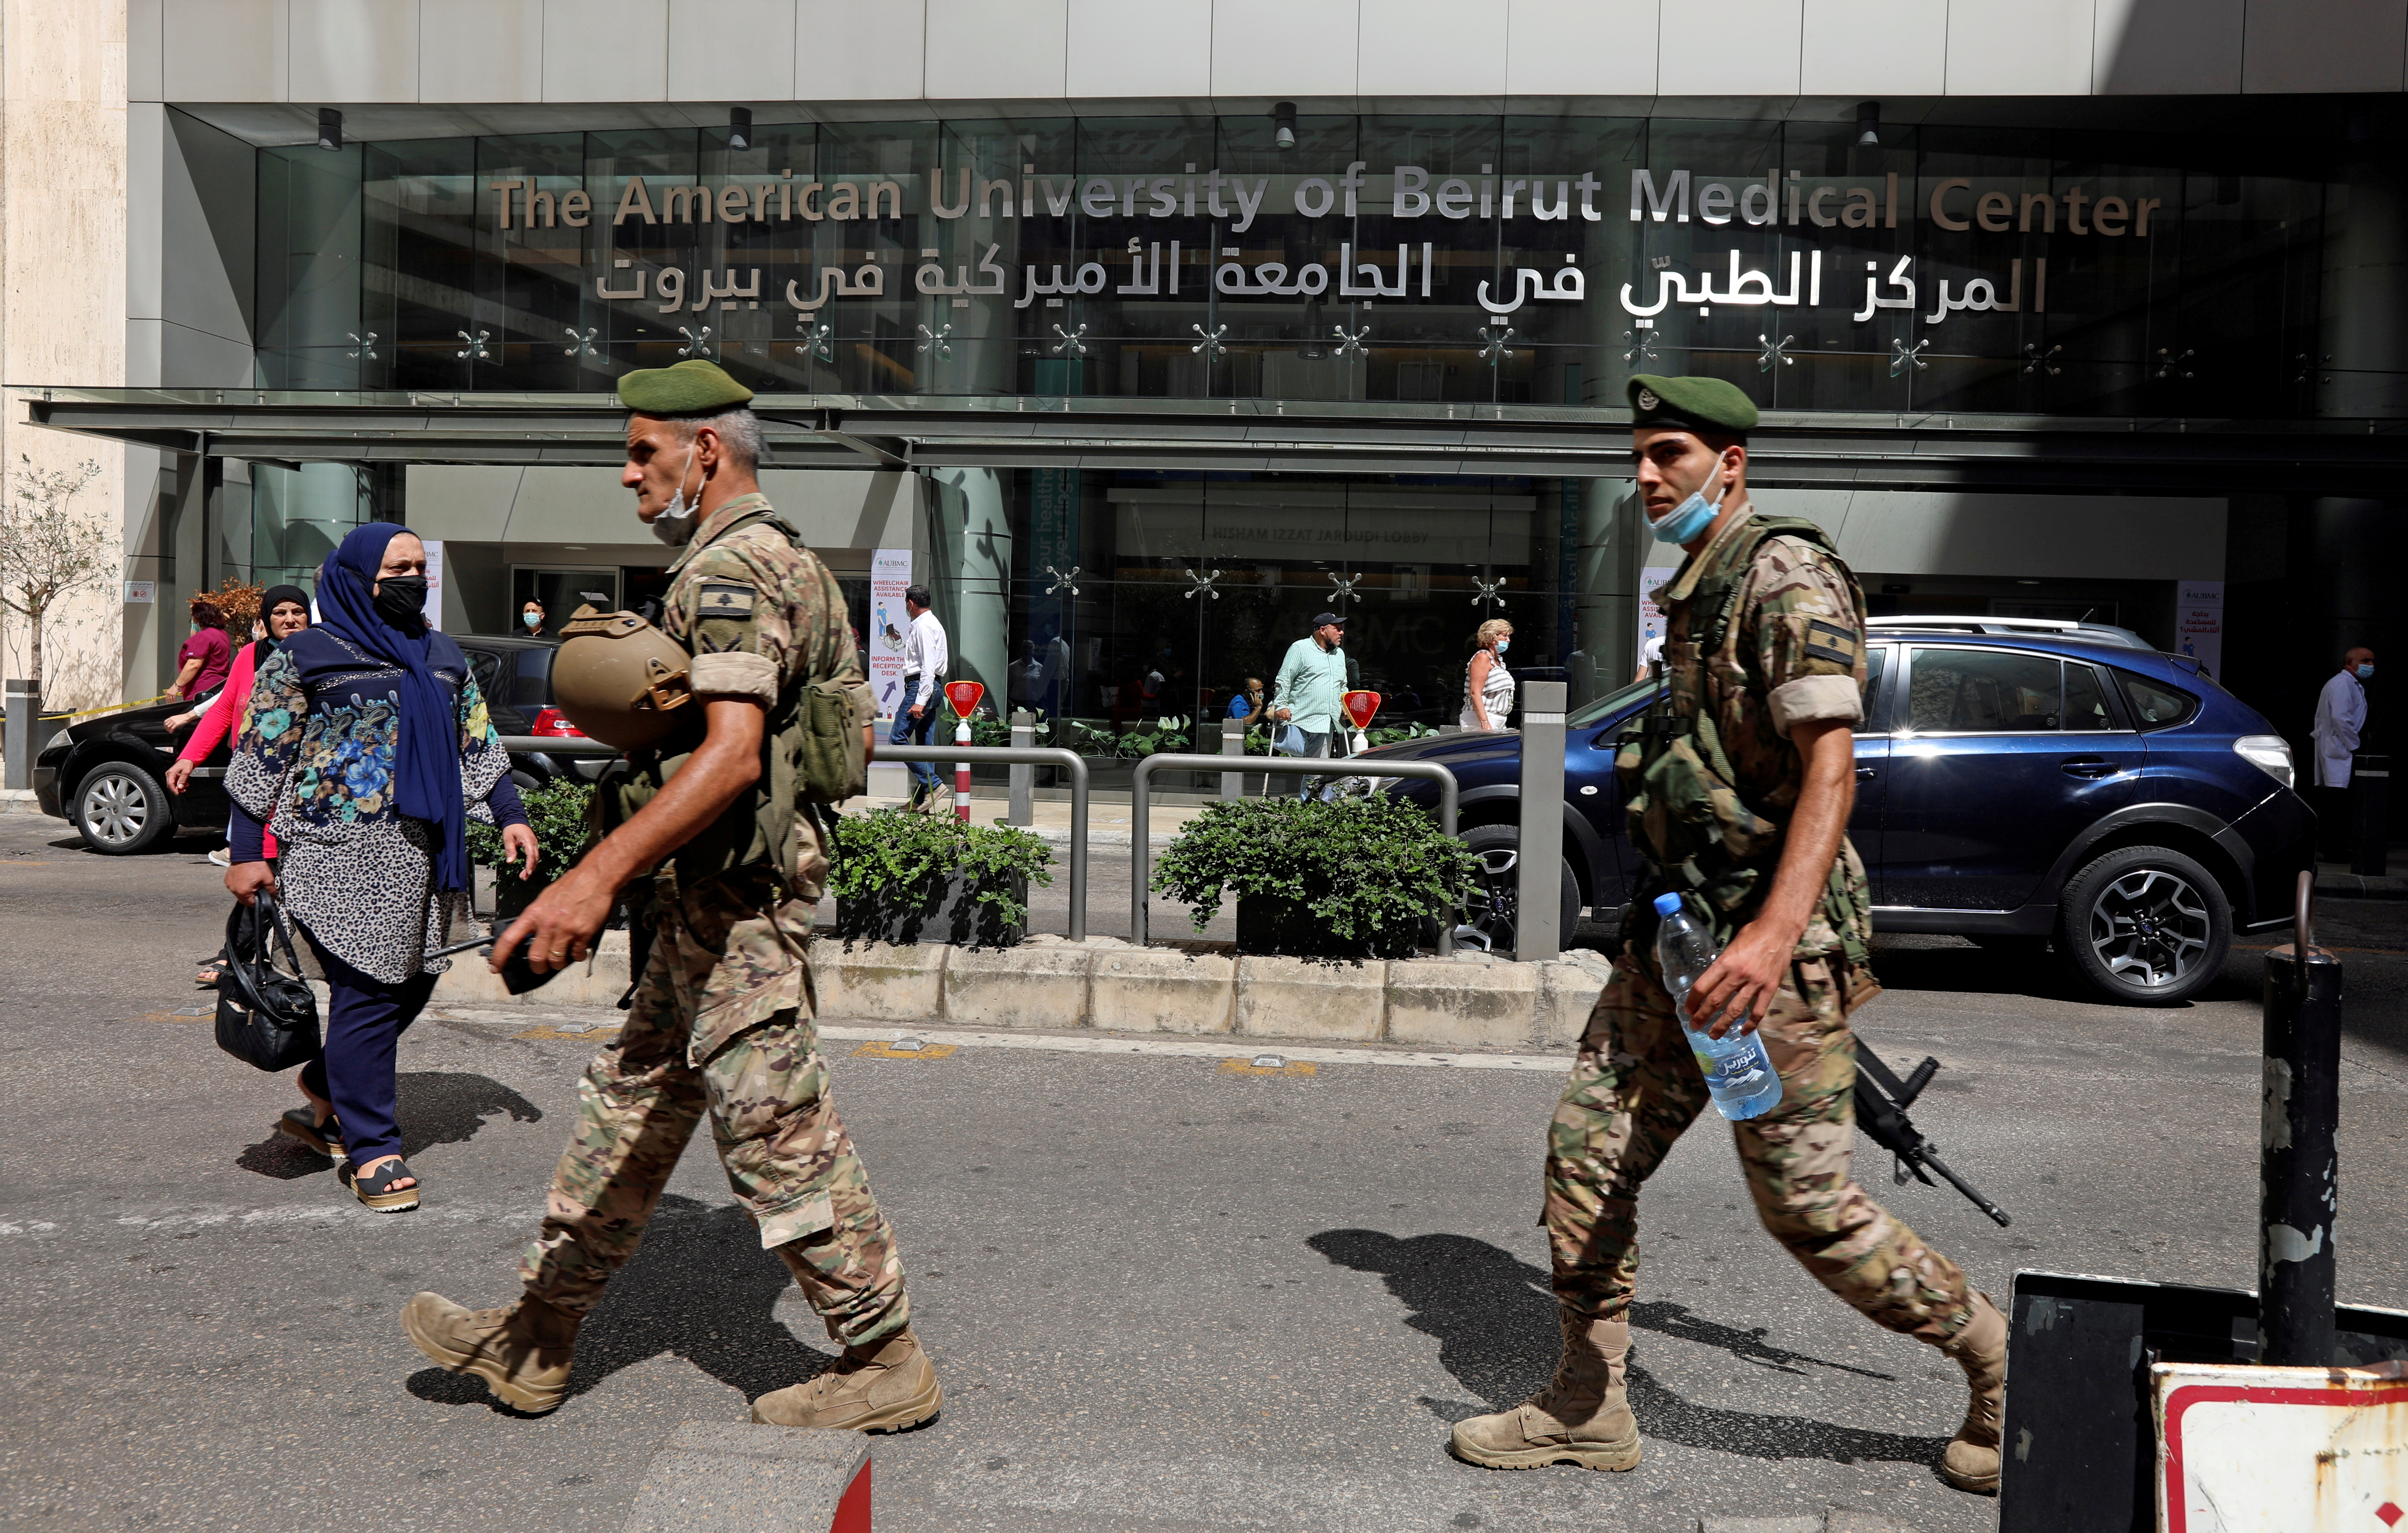 Lebanese army soldiers walk as they secure the area, outside American University of Beirut (AUB) medical centre in Beirut, Lebanon July 17, 2020. REUTERS/Mohamed Azakir/File Photo